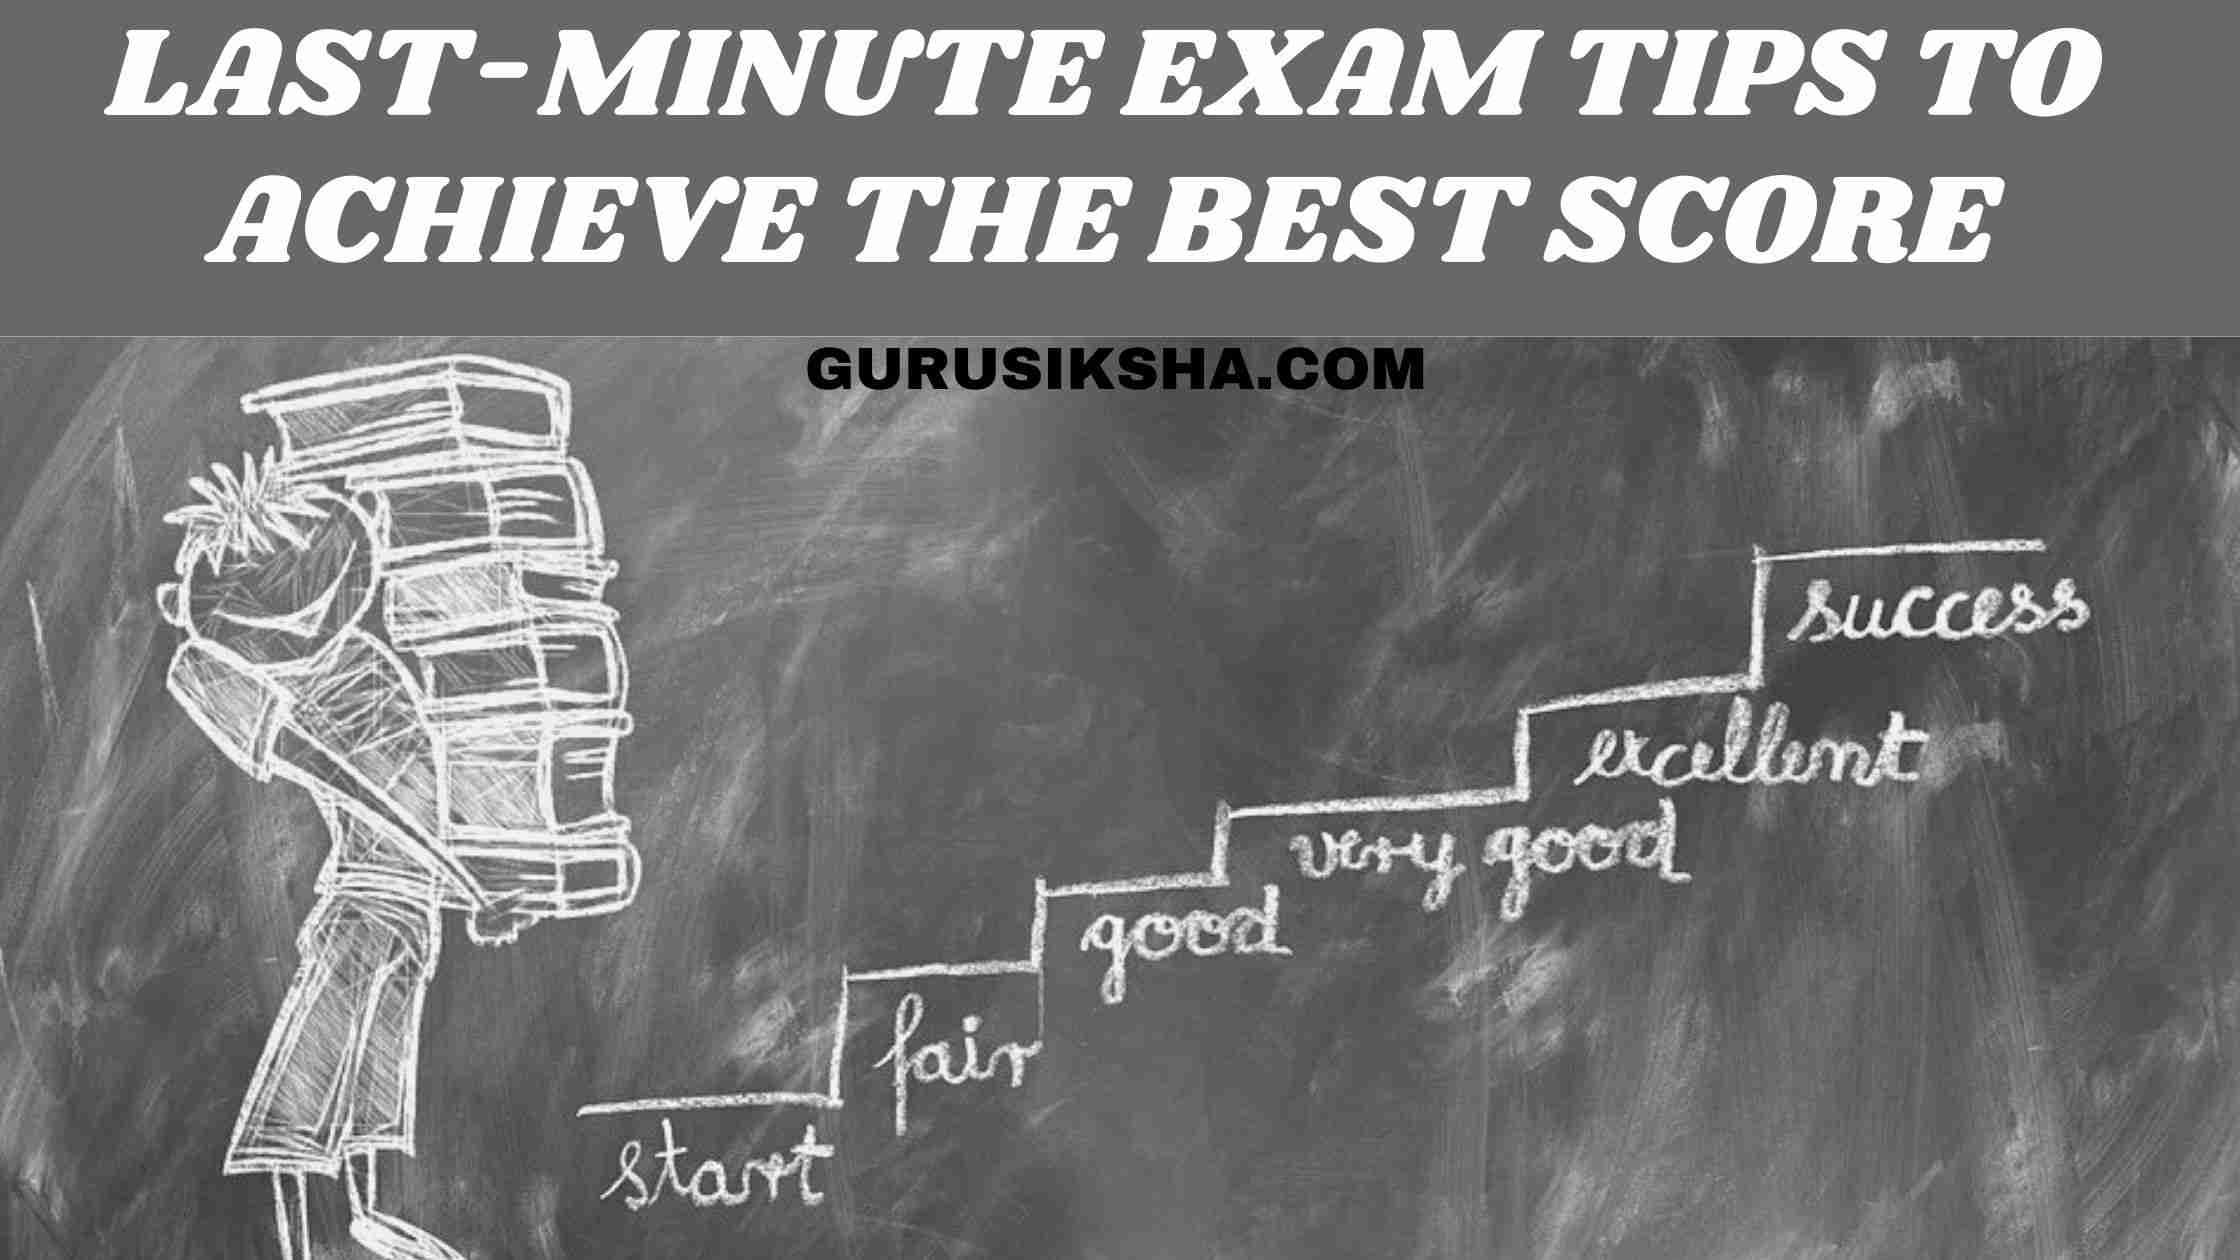 Some Last-Minute Exam Tips To Achieve The Best Score